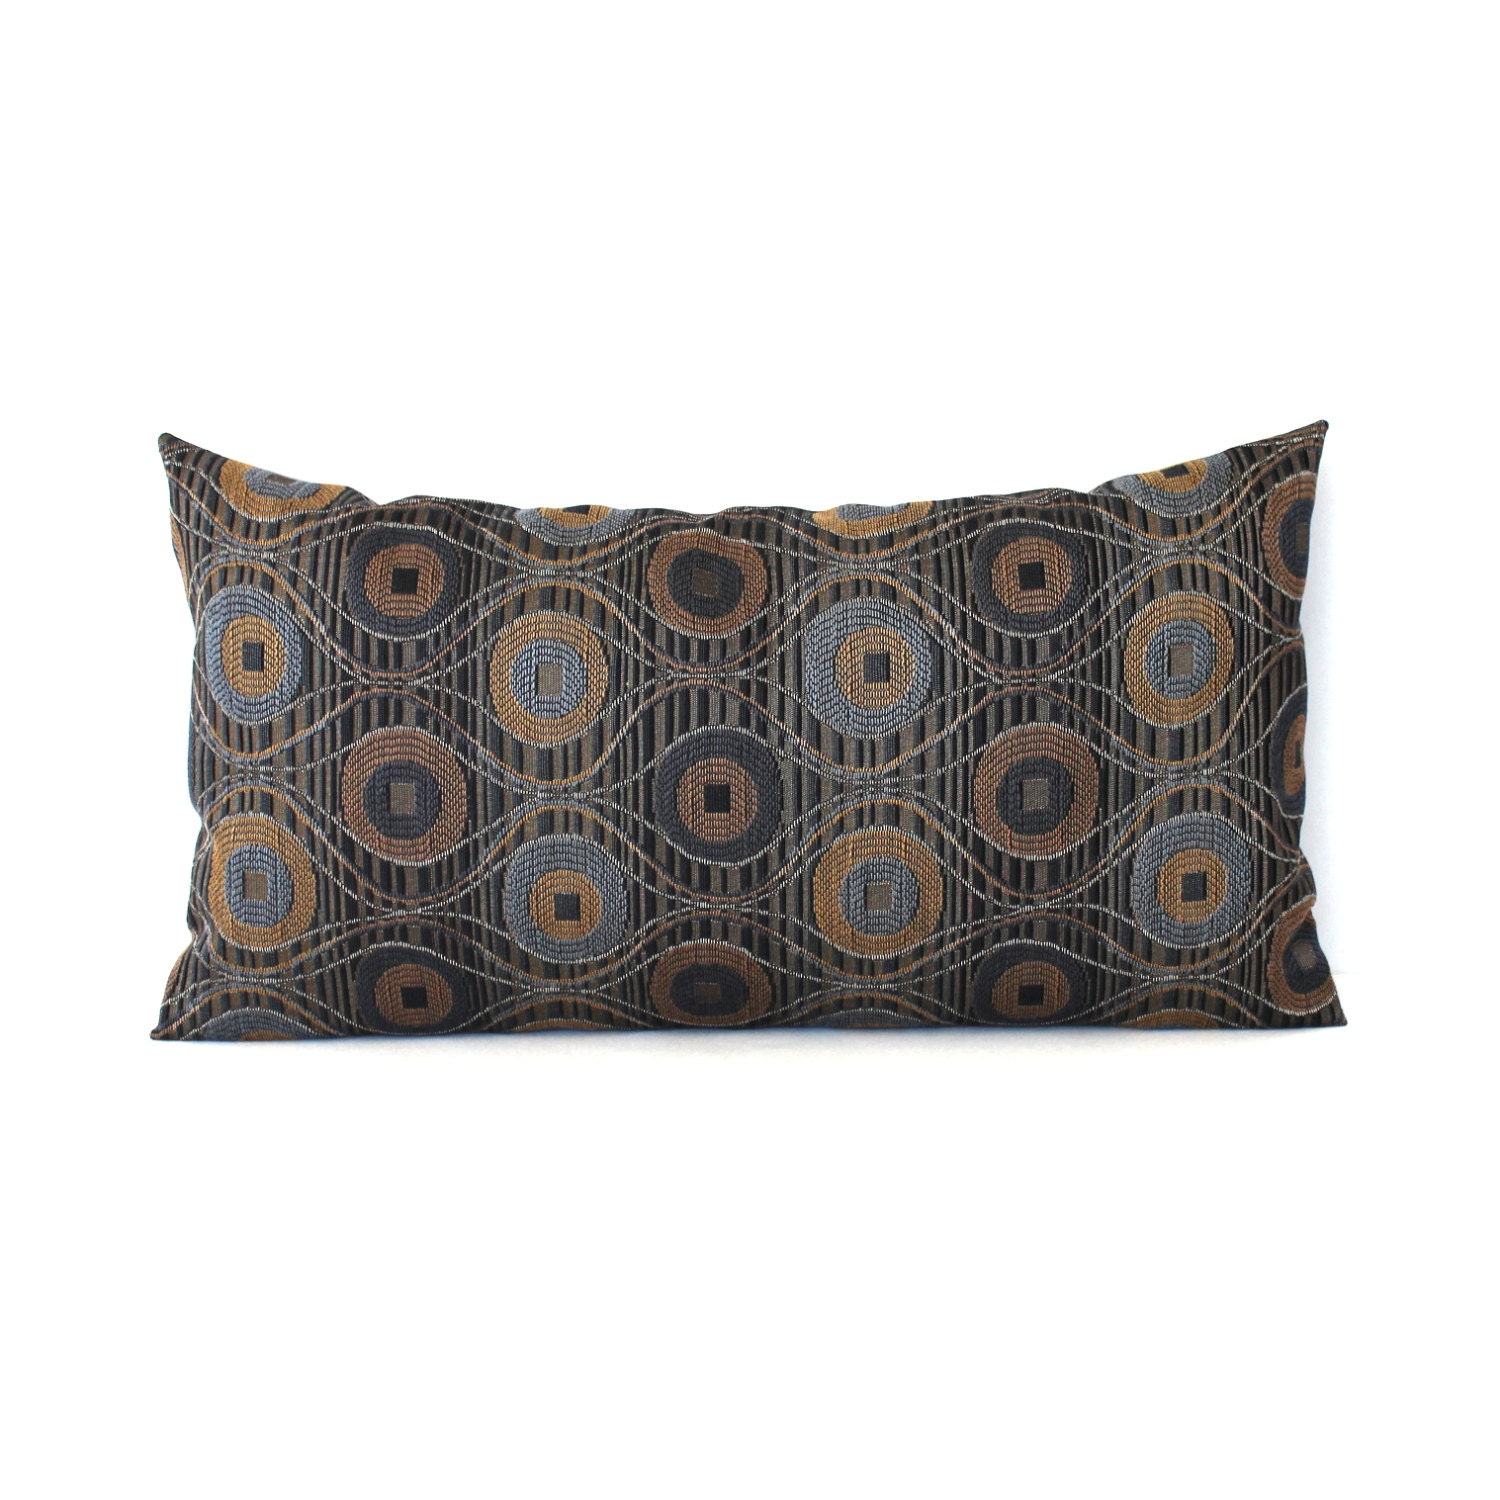 Decorative Black Lumbar Pillow : Lumbar Pillow Cover Blue Pillow Brown Pillow Decorative Pillow